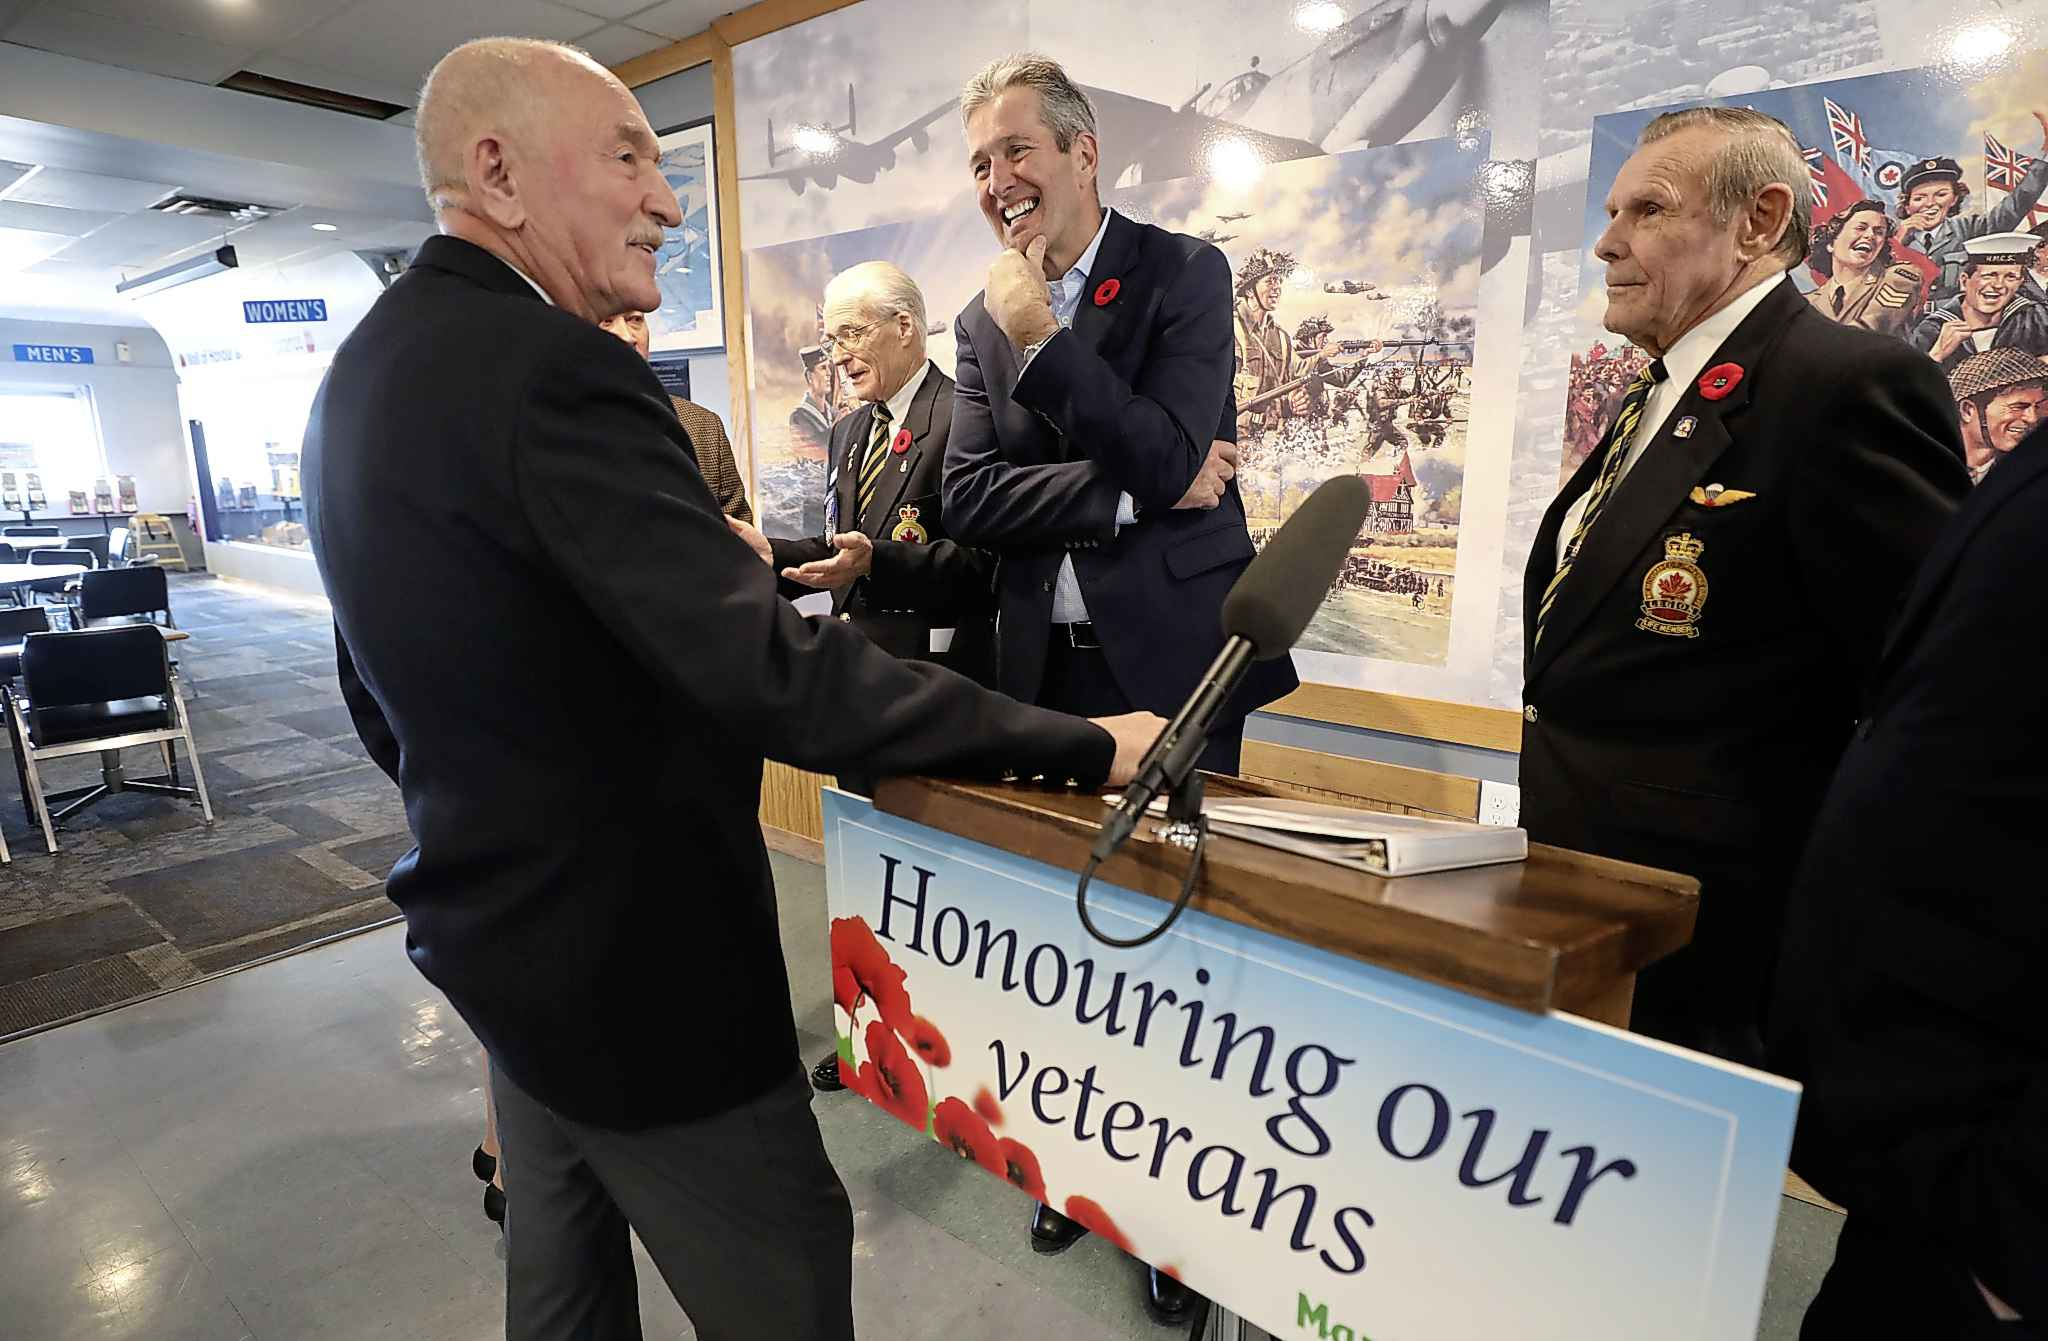 Premier Brian Pallister talks to Henderson branch Legion president, Fred Wilson (left), and other veterans, after holding press conference on the provincial government offering new support for veterans organizations on Thursday. (Ruth Bonneville / Winnipeg Free Press)